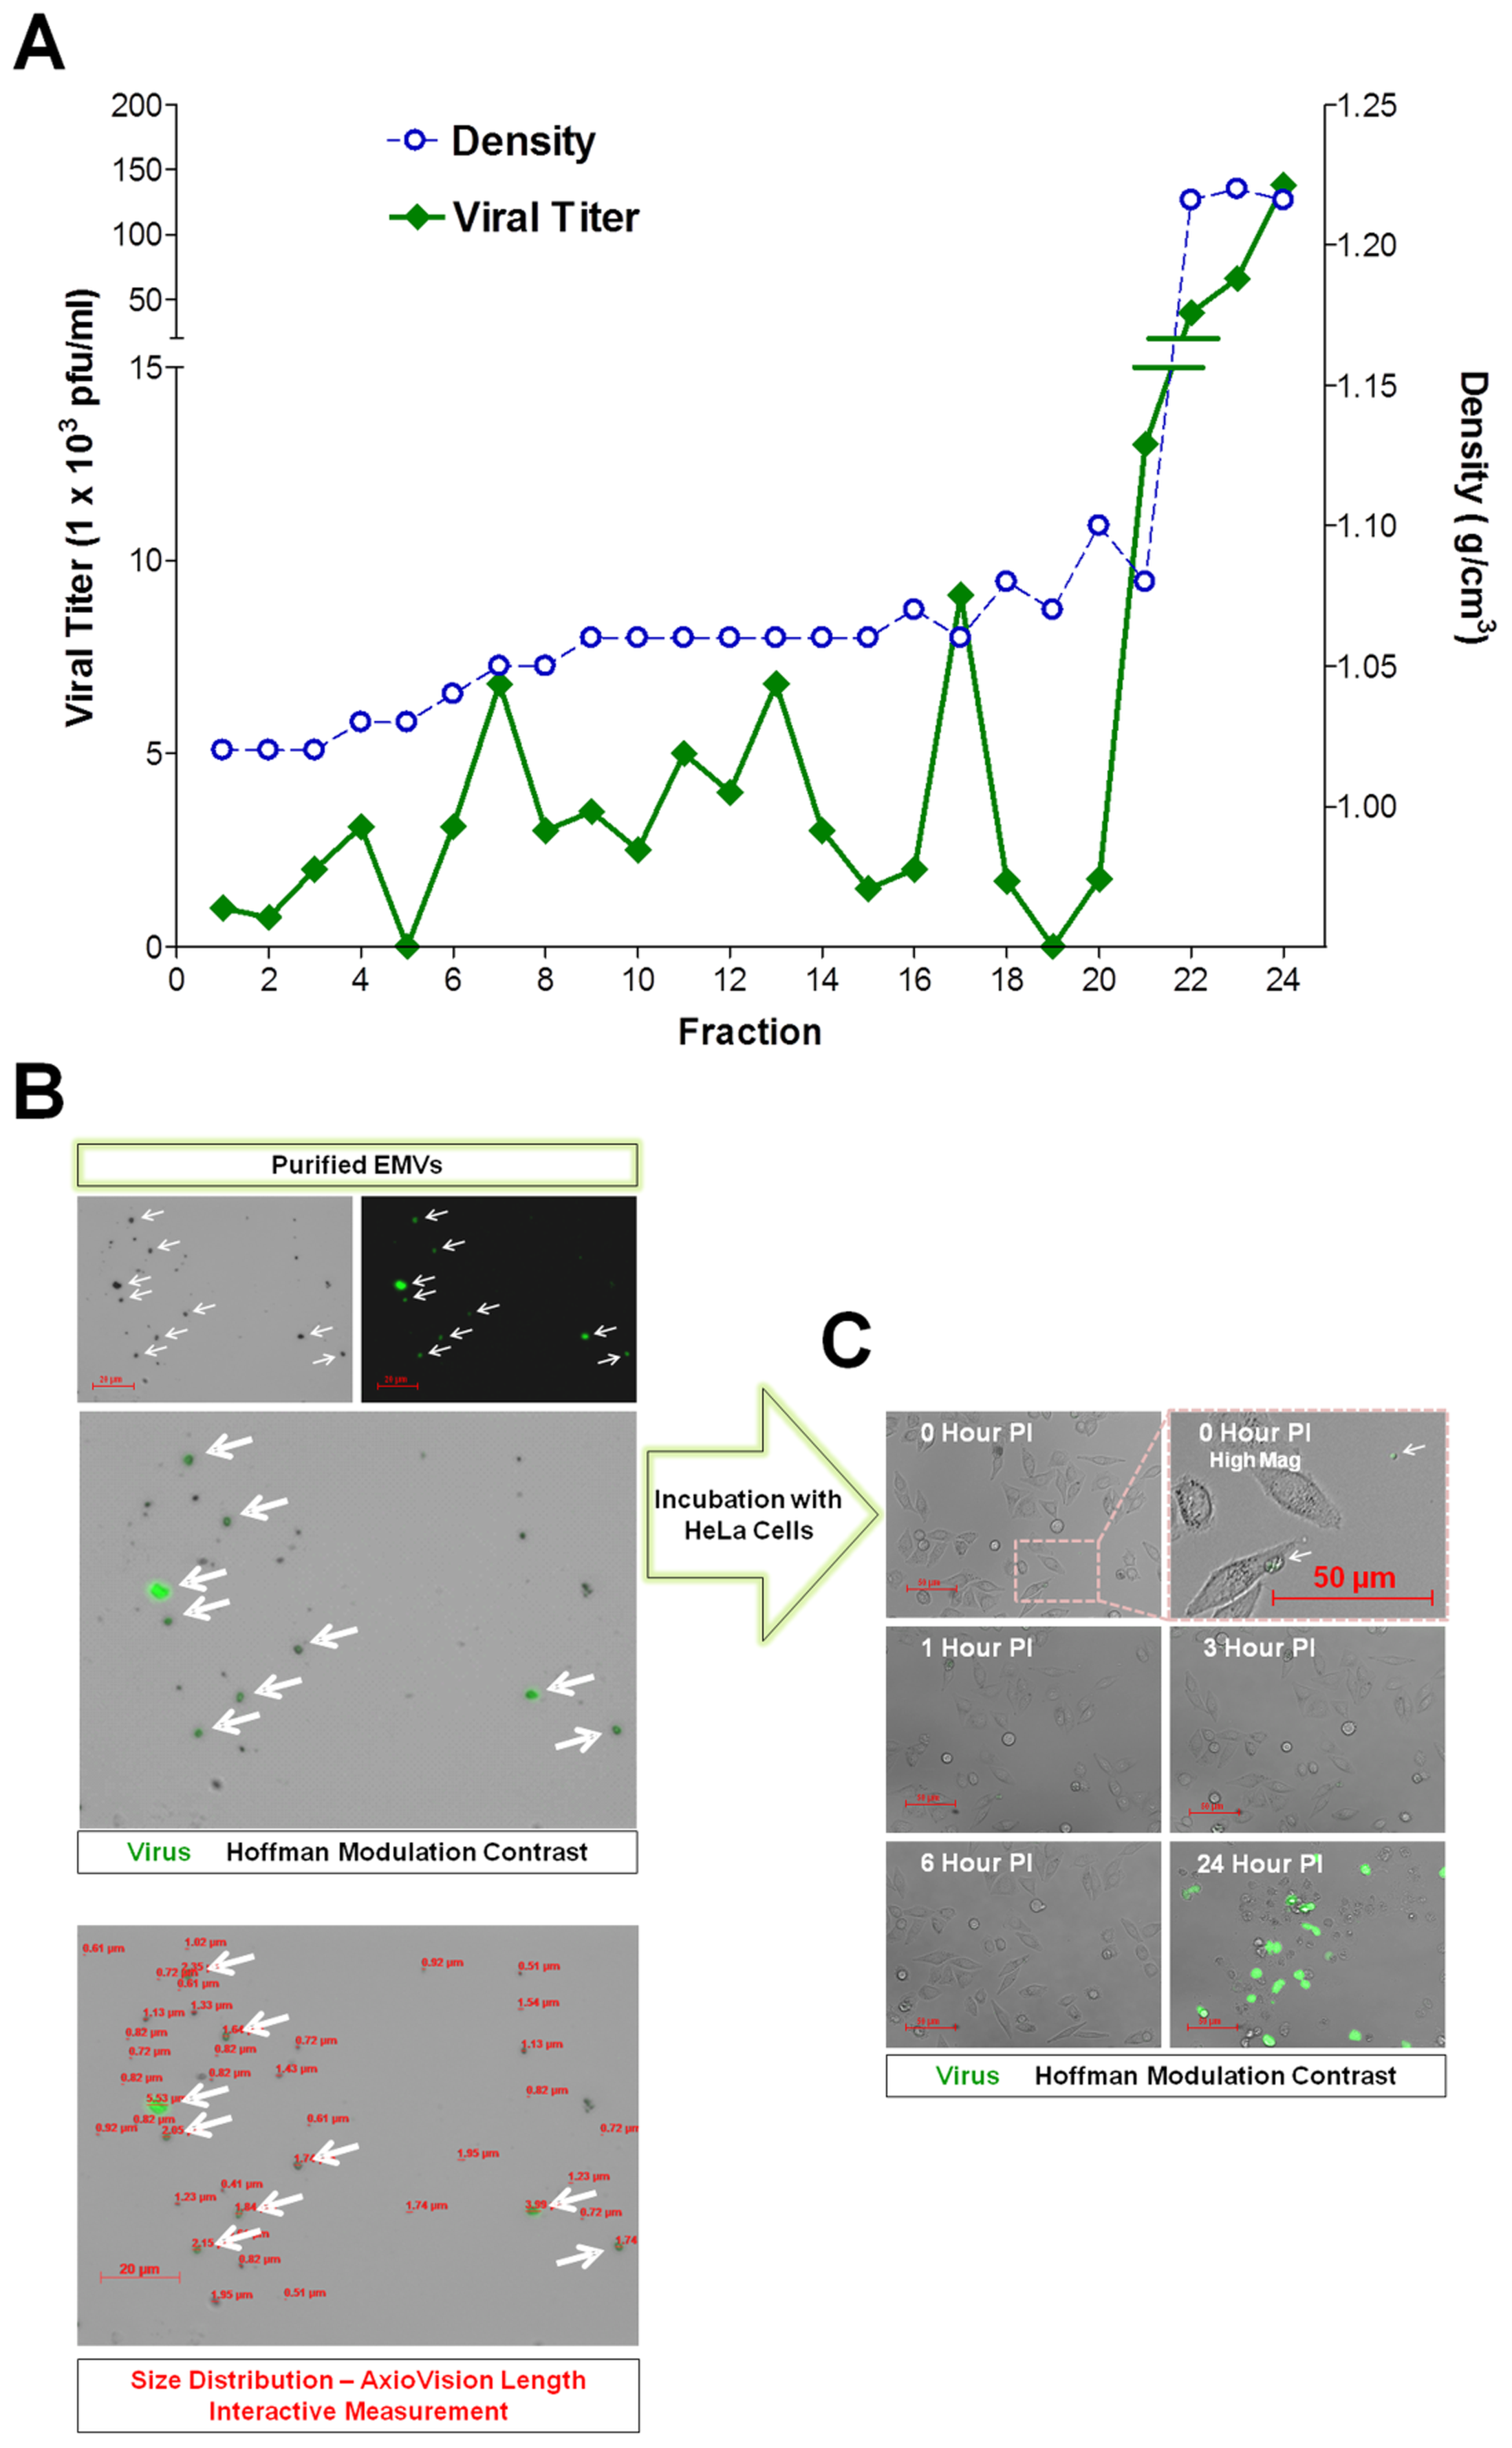 Purified EMVs isolated from infected progenitor cells contained infectious virus.